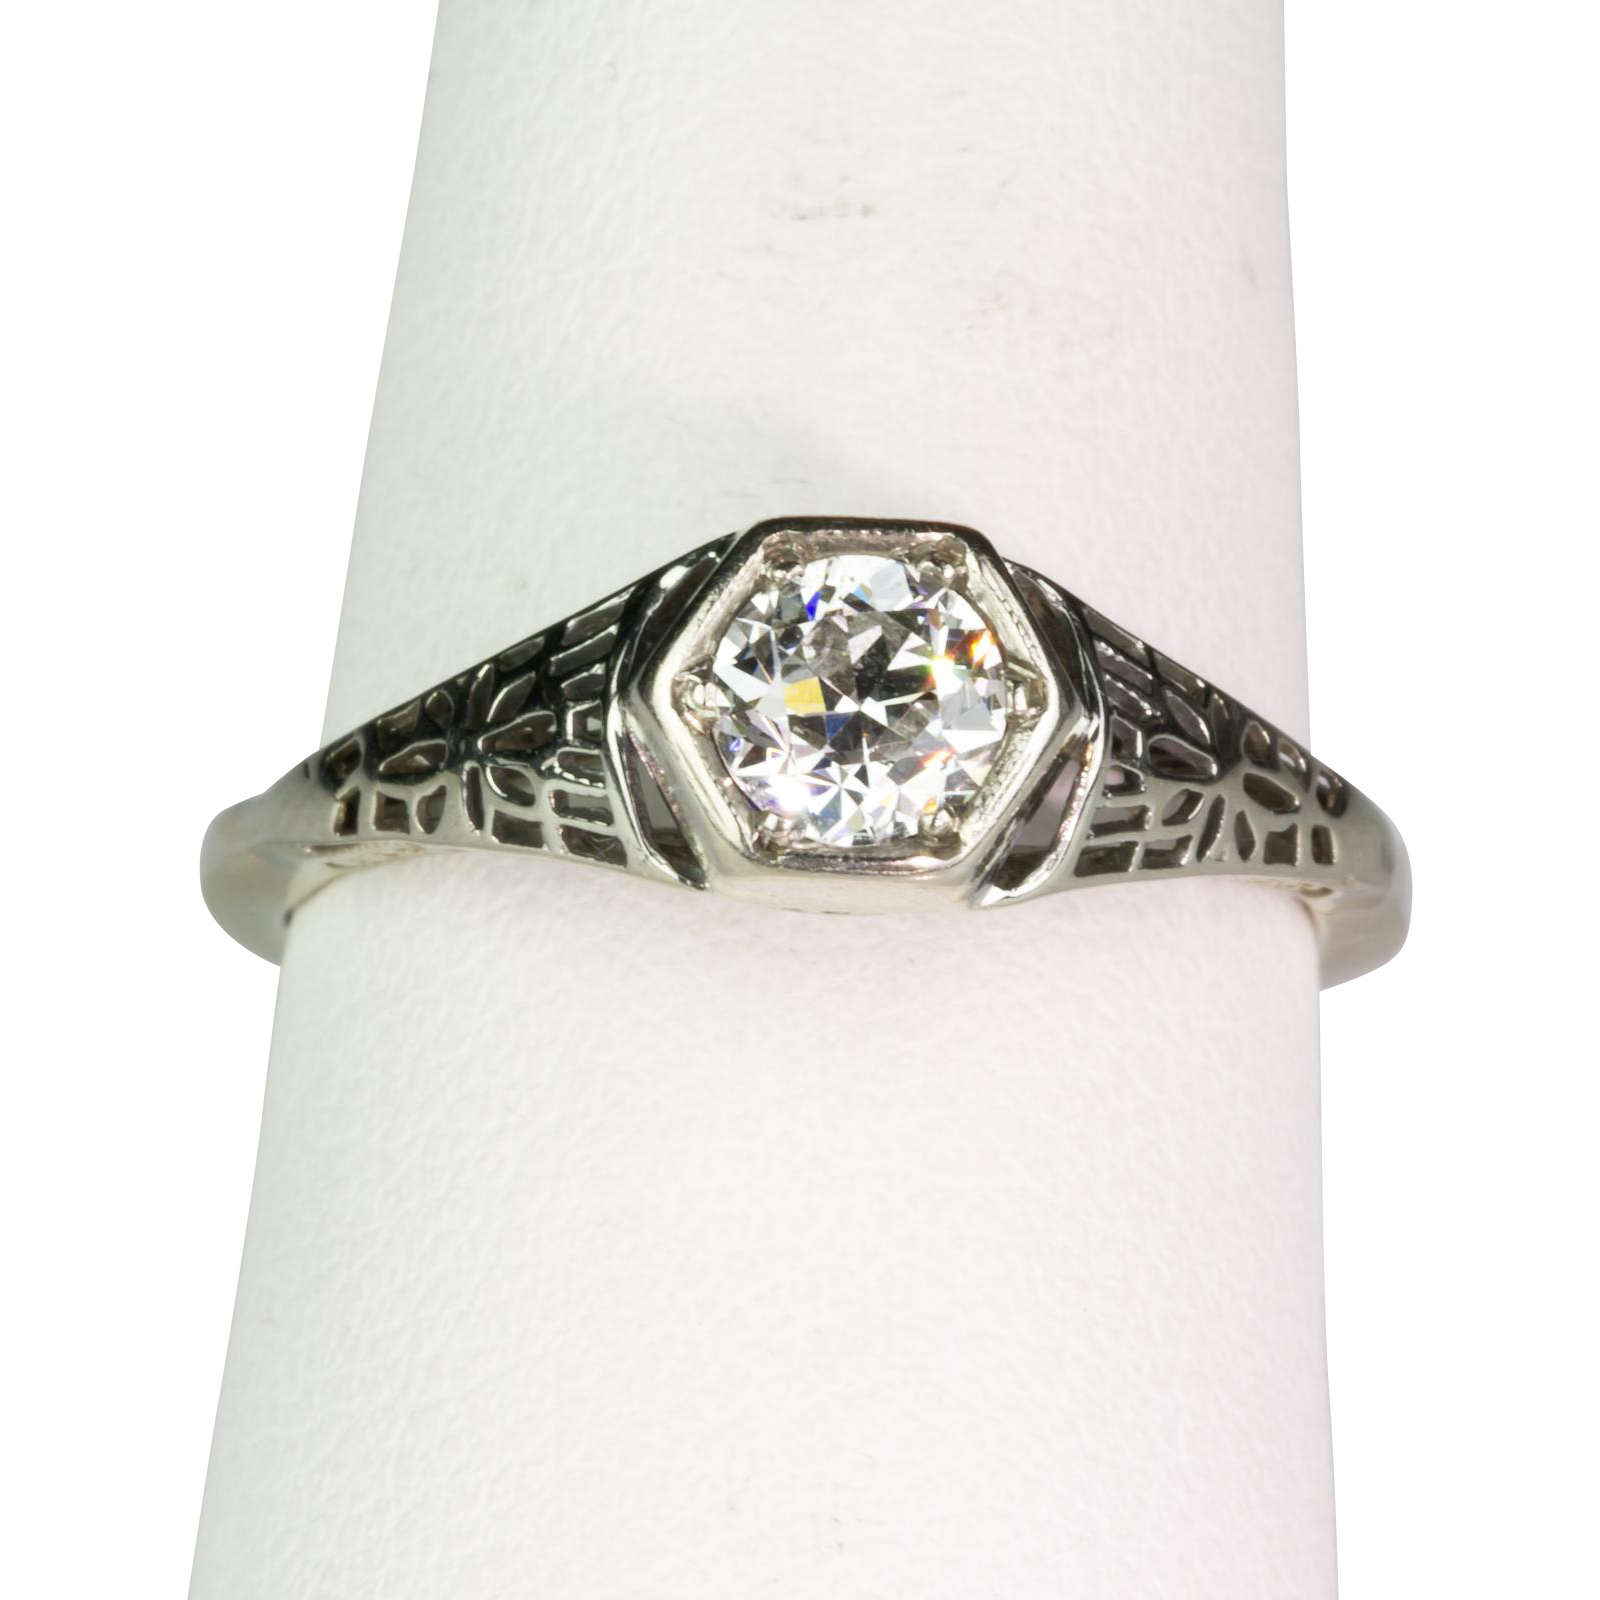 Art Deco Diamond 50ct 14K White Gold Filigree Engagement Ring from ccfinds o